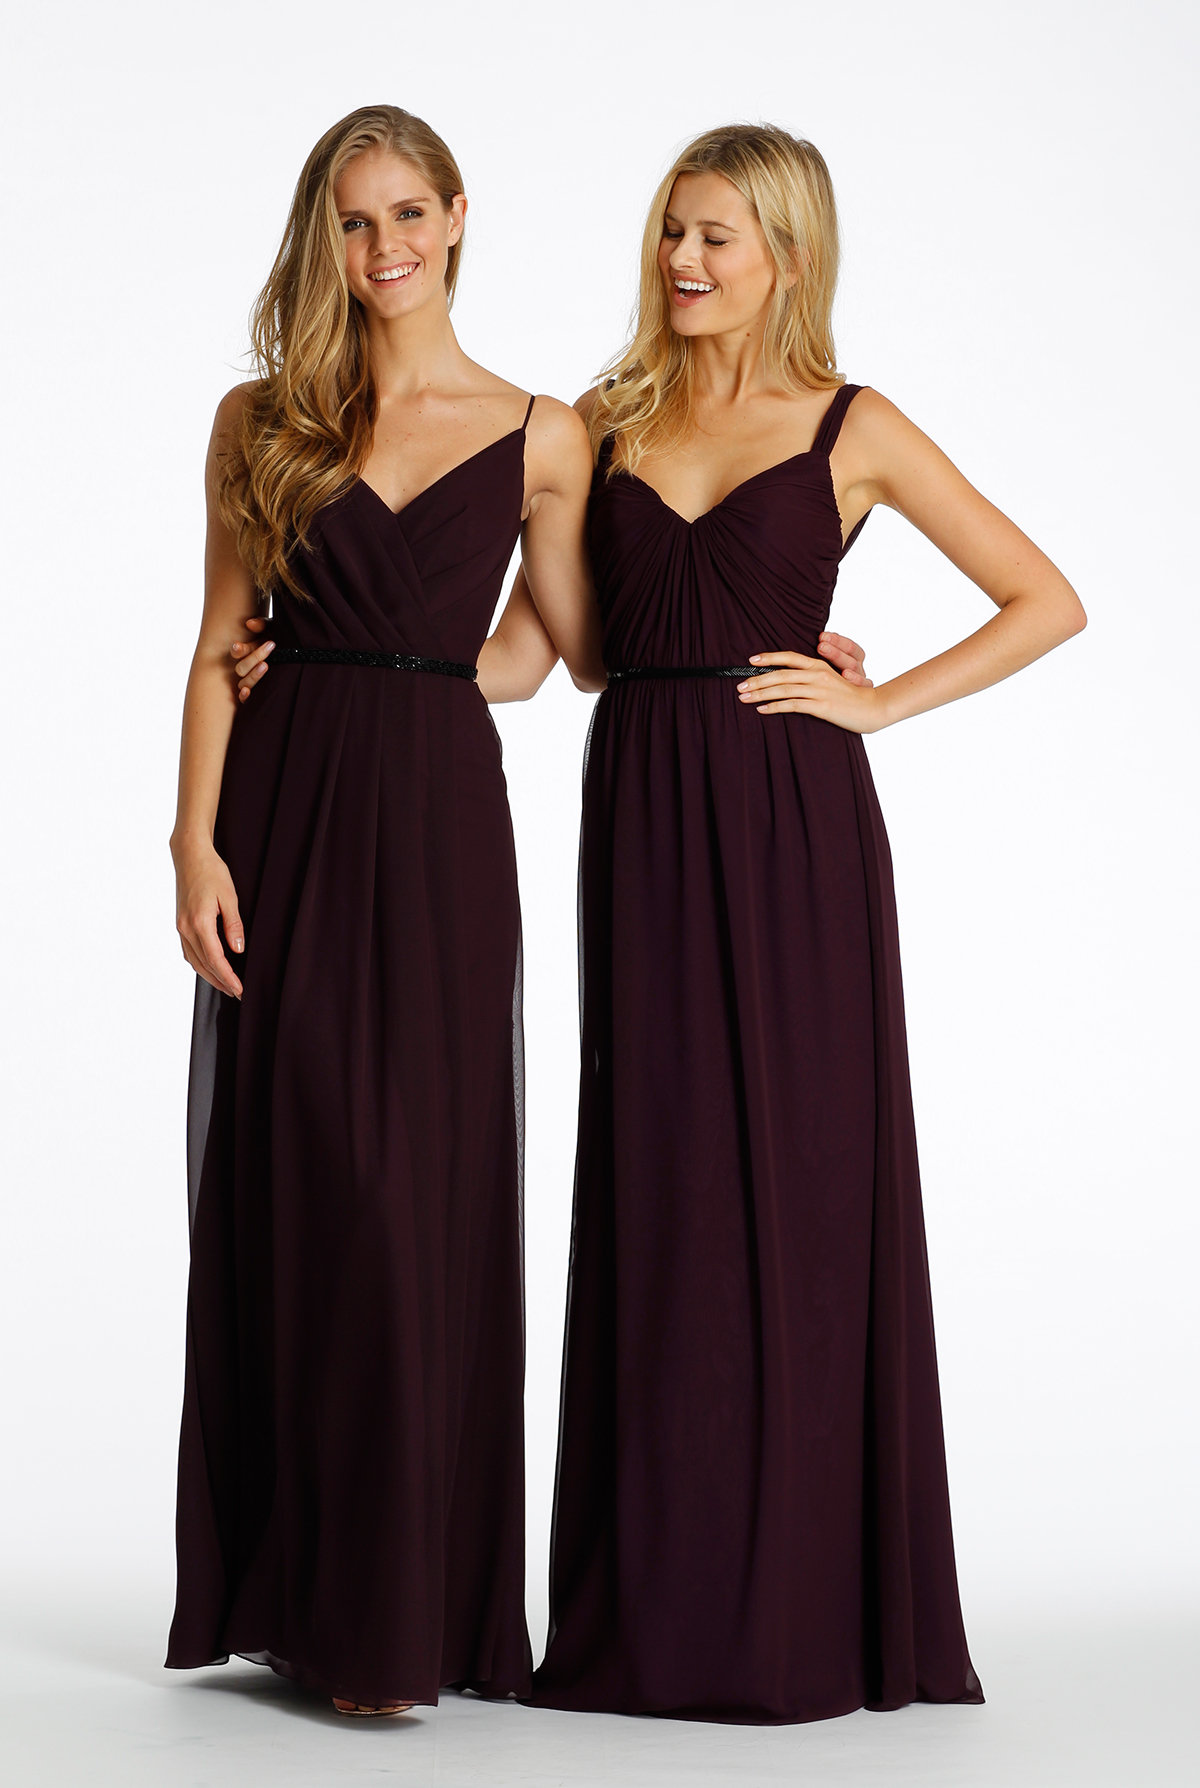 Bridesmaids special occasion dresses and bridal party gowns by style 5615 5 group view ombrellifo Gallery